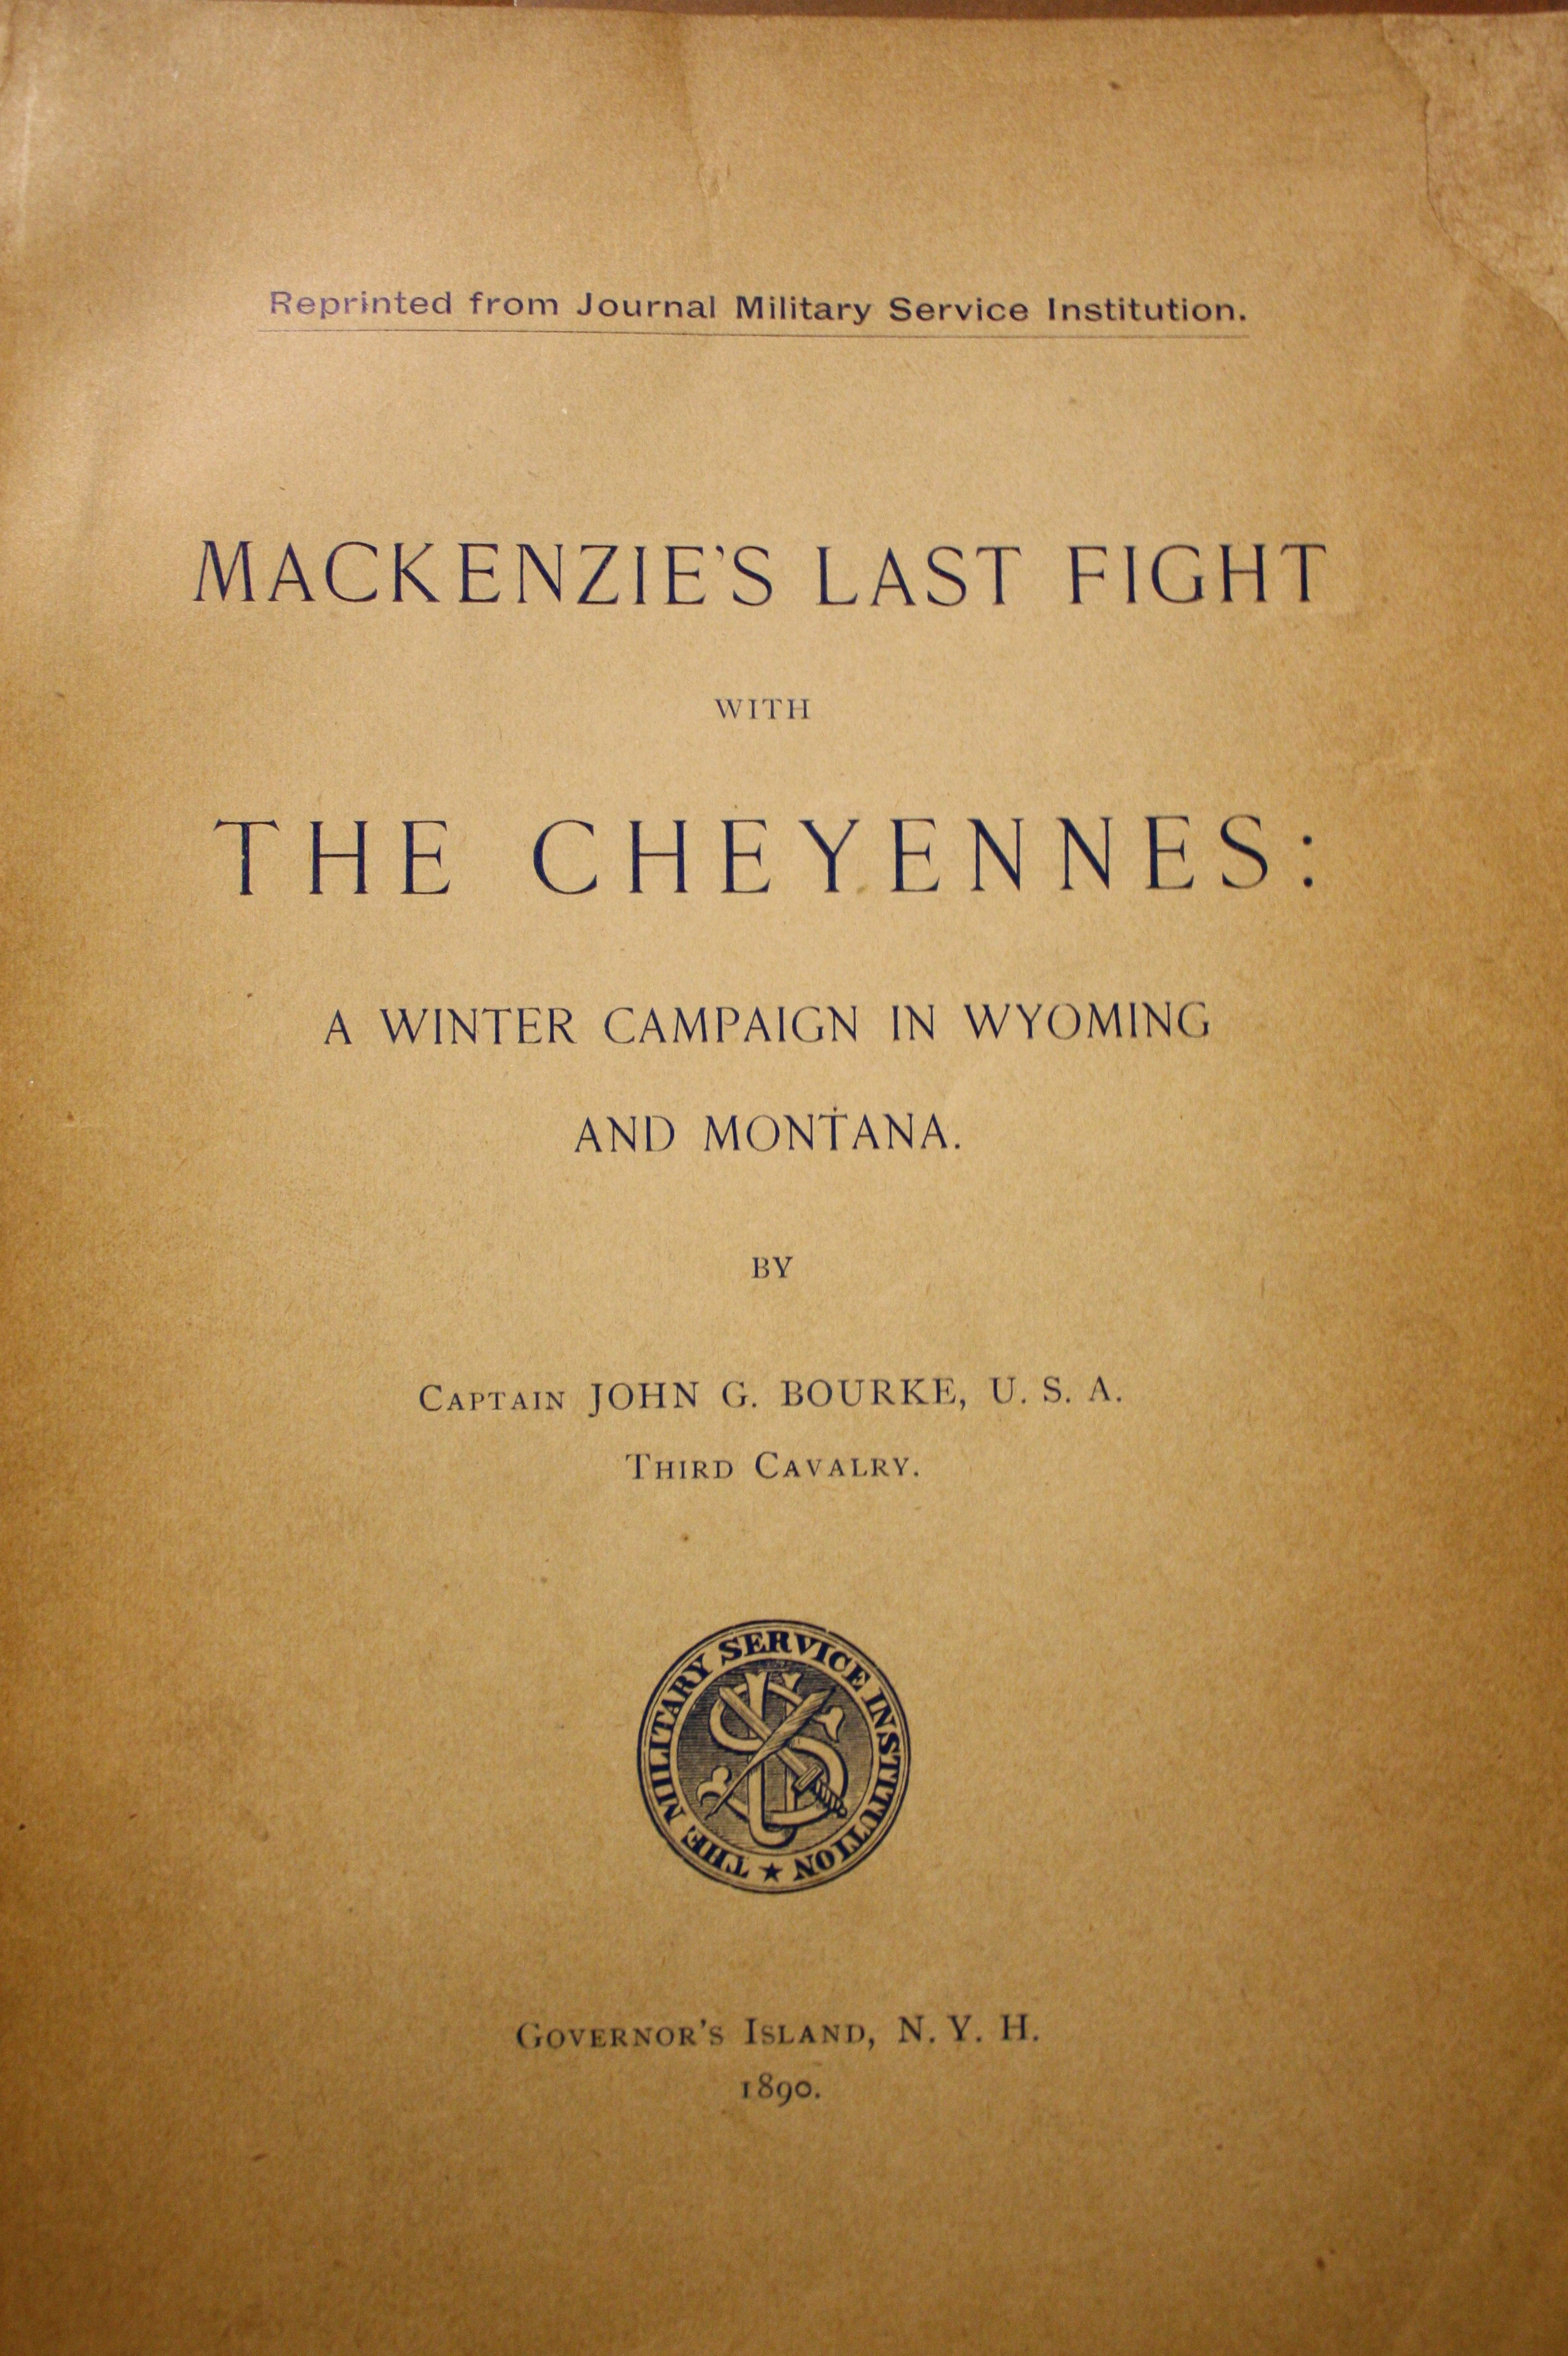 Image for MacKenzie's Last Fight With the Cheyennes: A Winter Campaign in Wyoming and Montana